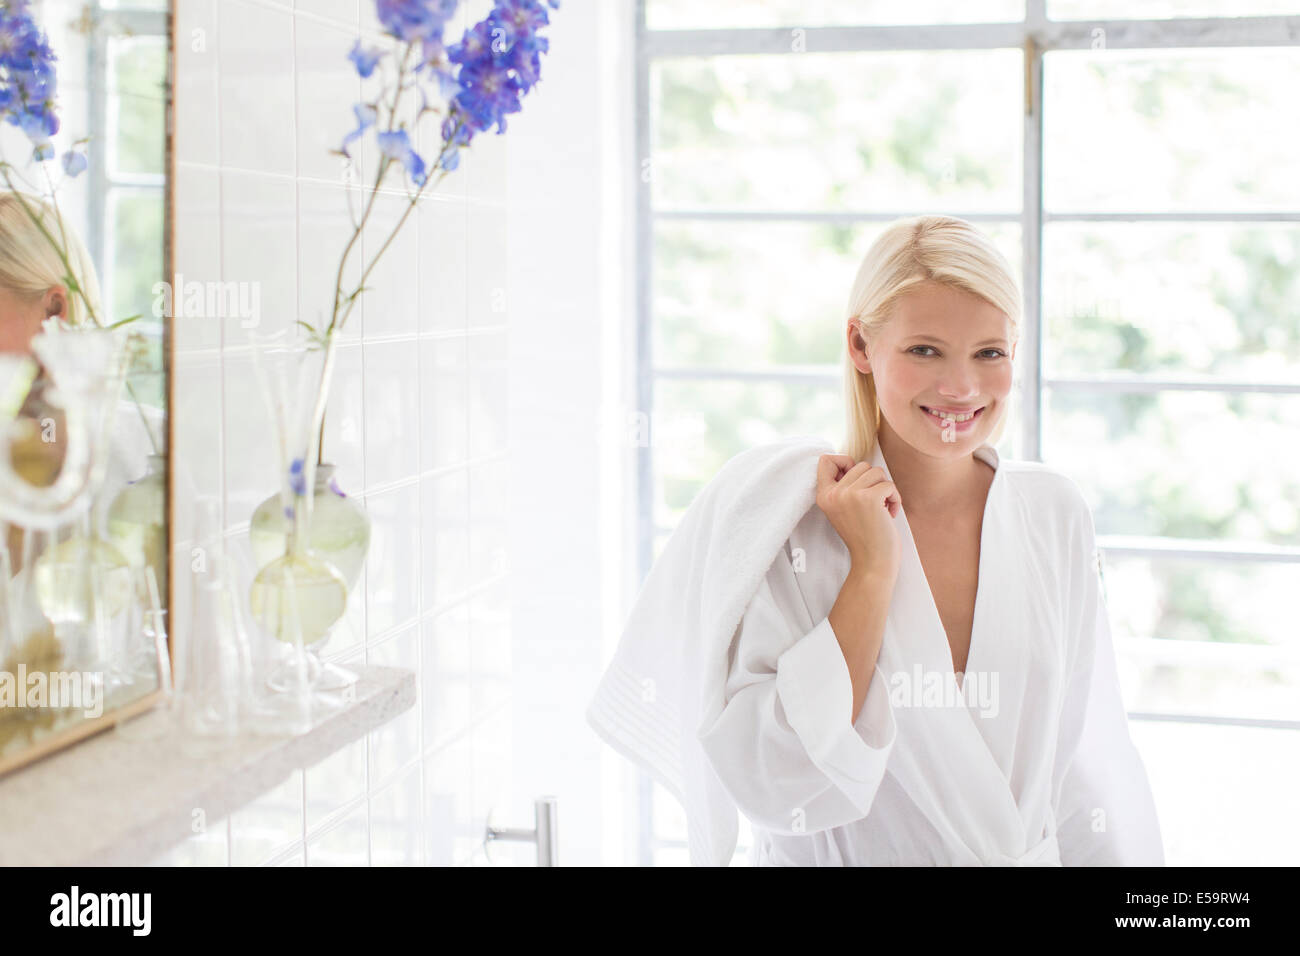 Woman in bathrobe smiling in bathroom - Stock Image